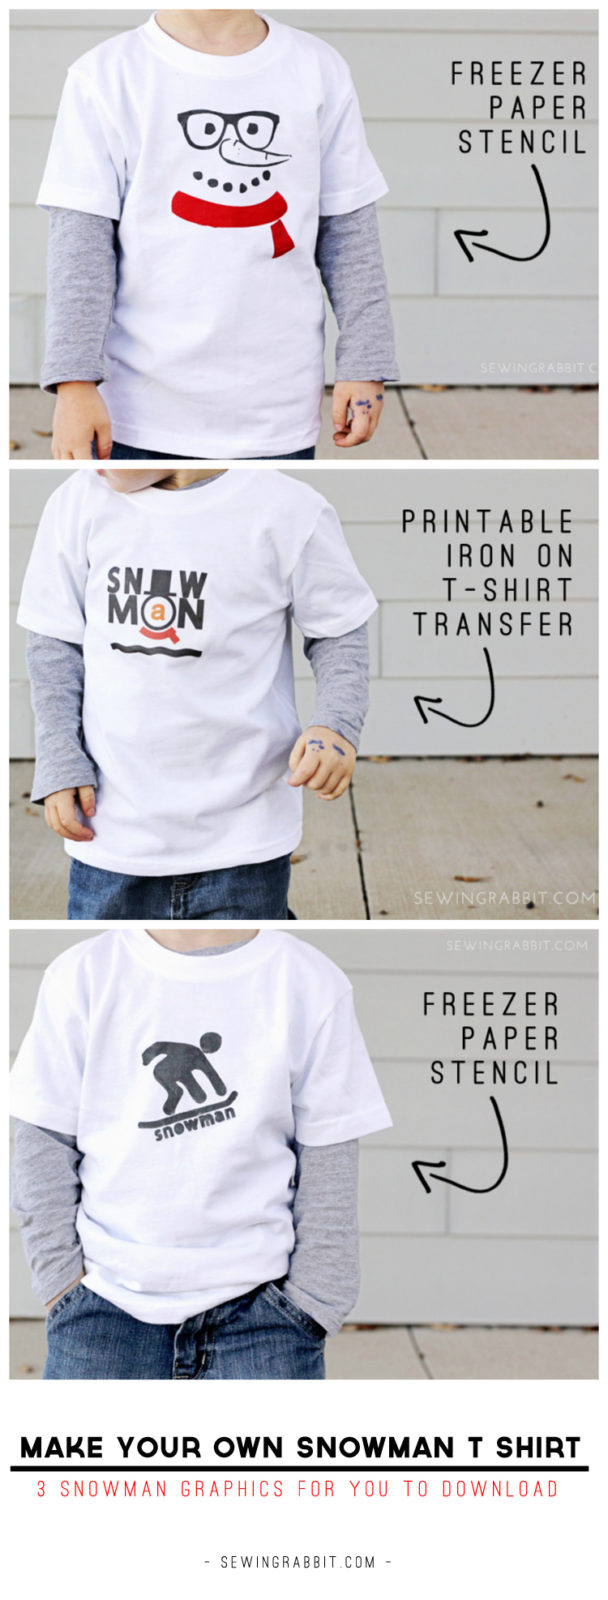 Make your own Snowman TShirts The Sewing Rabbit